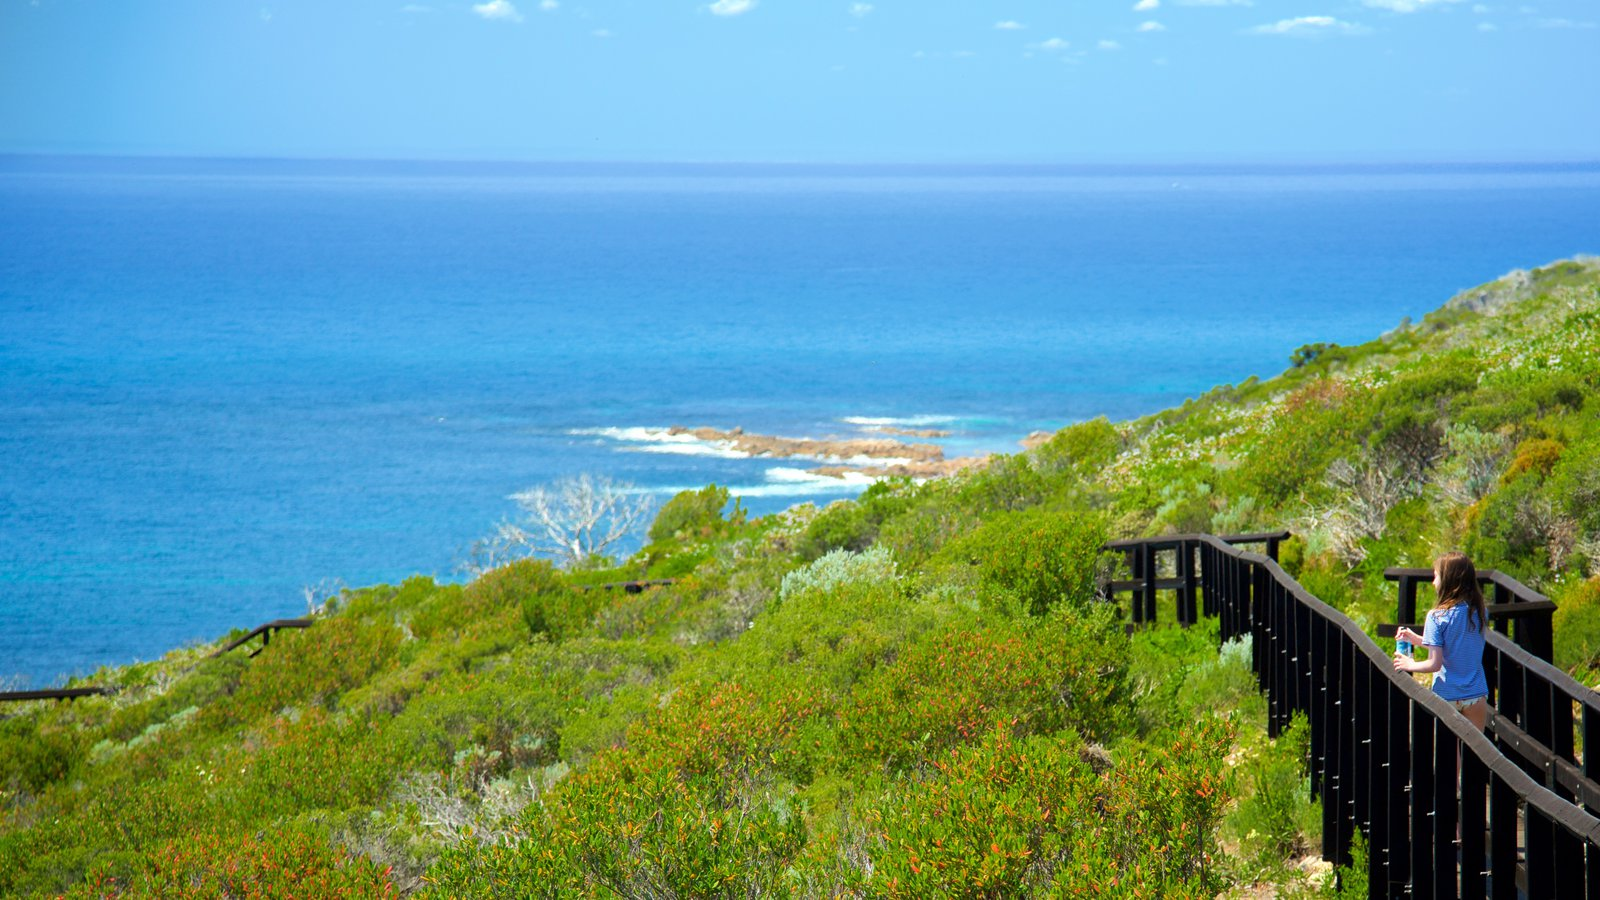 Cape Naturaliste Lighthouse featuring general coastal views and landscape views as well as an individual child